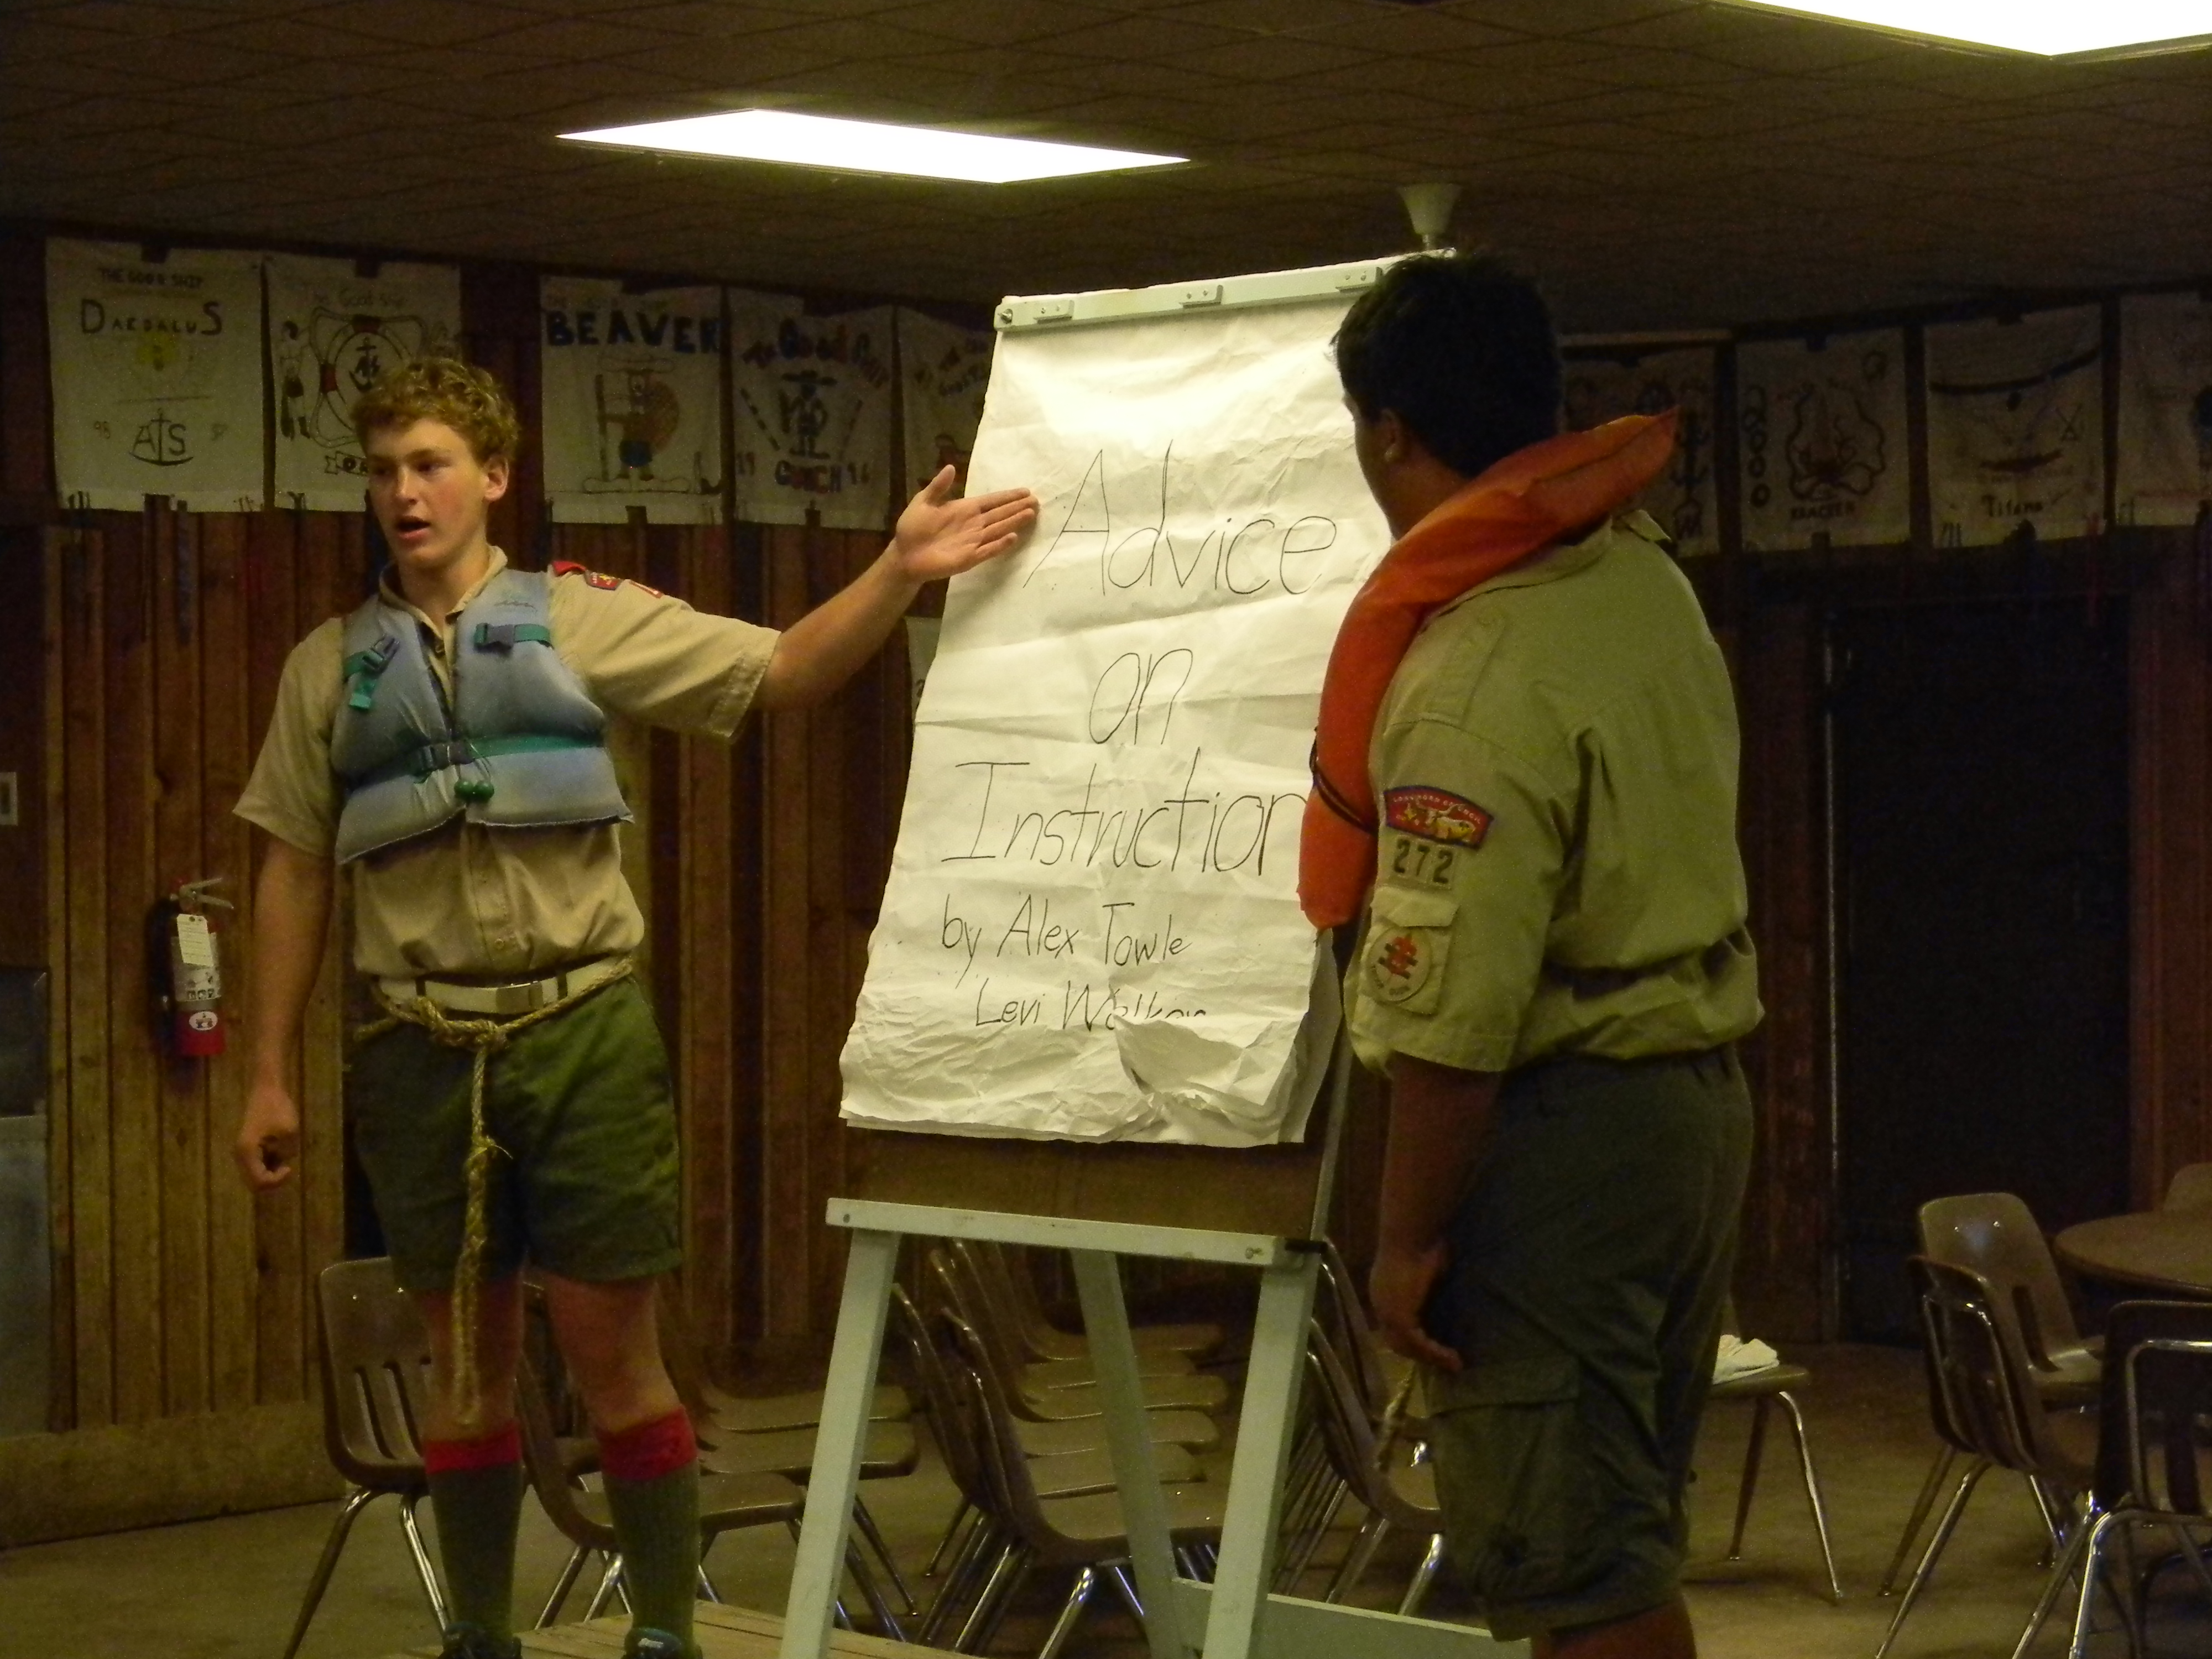 Scouts present on Aquatic Safety